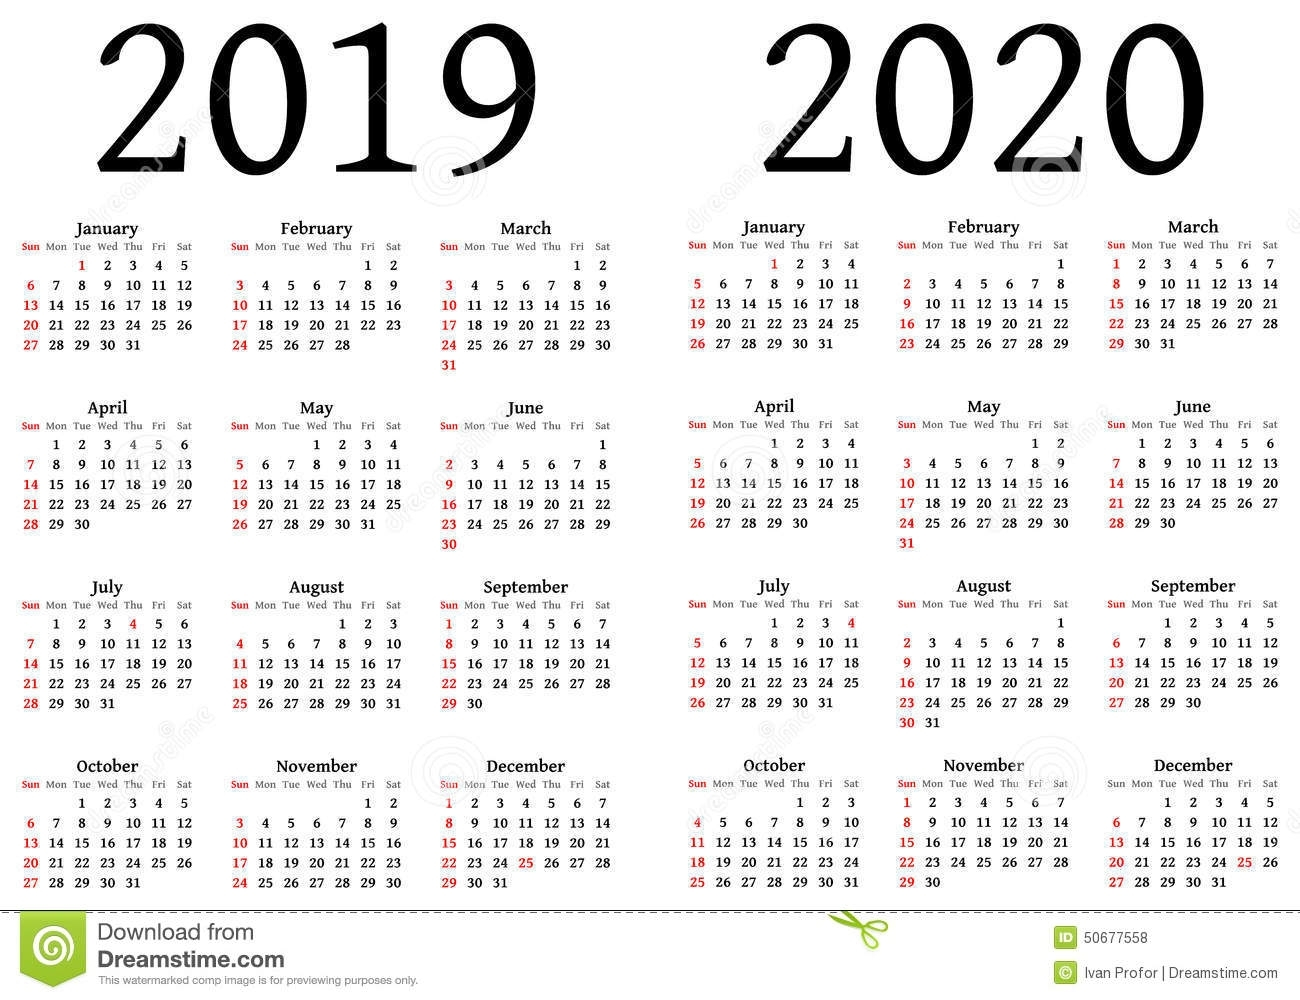 Calendar For 2019 And 2020 Stock Vector. Illustration Of Designers with regard to U Of C Calendar 2019/2020